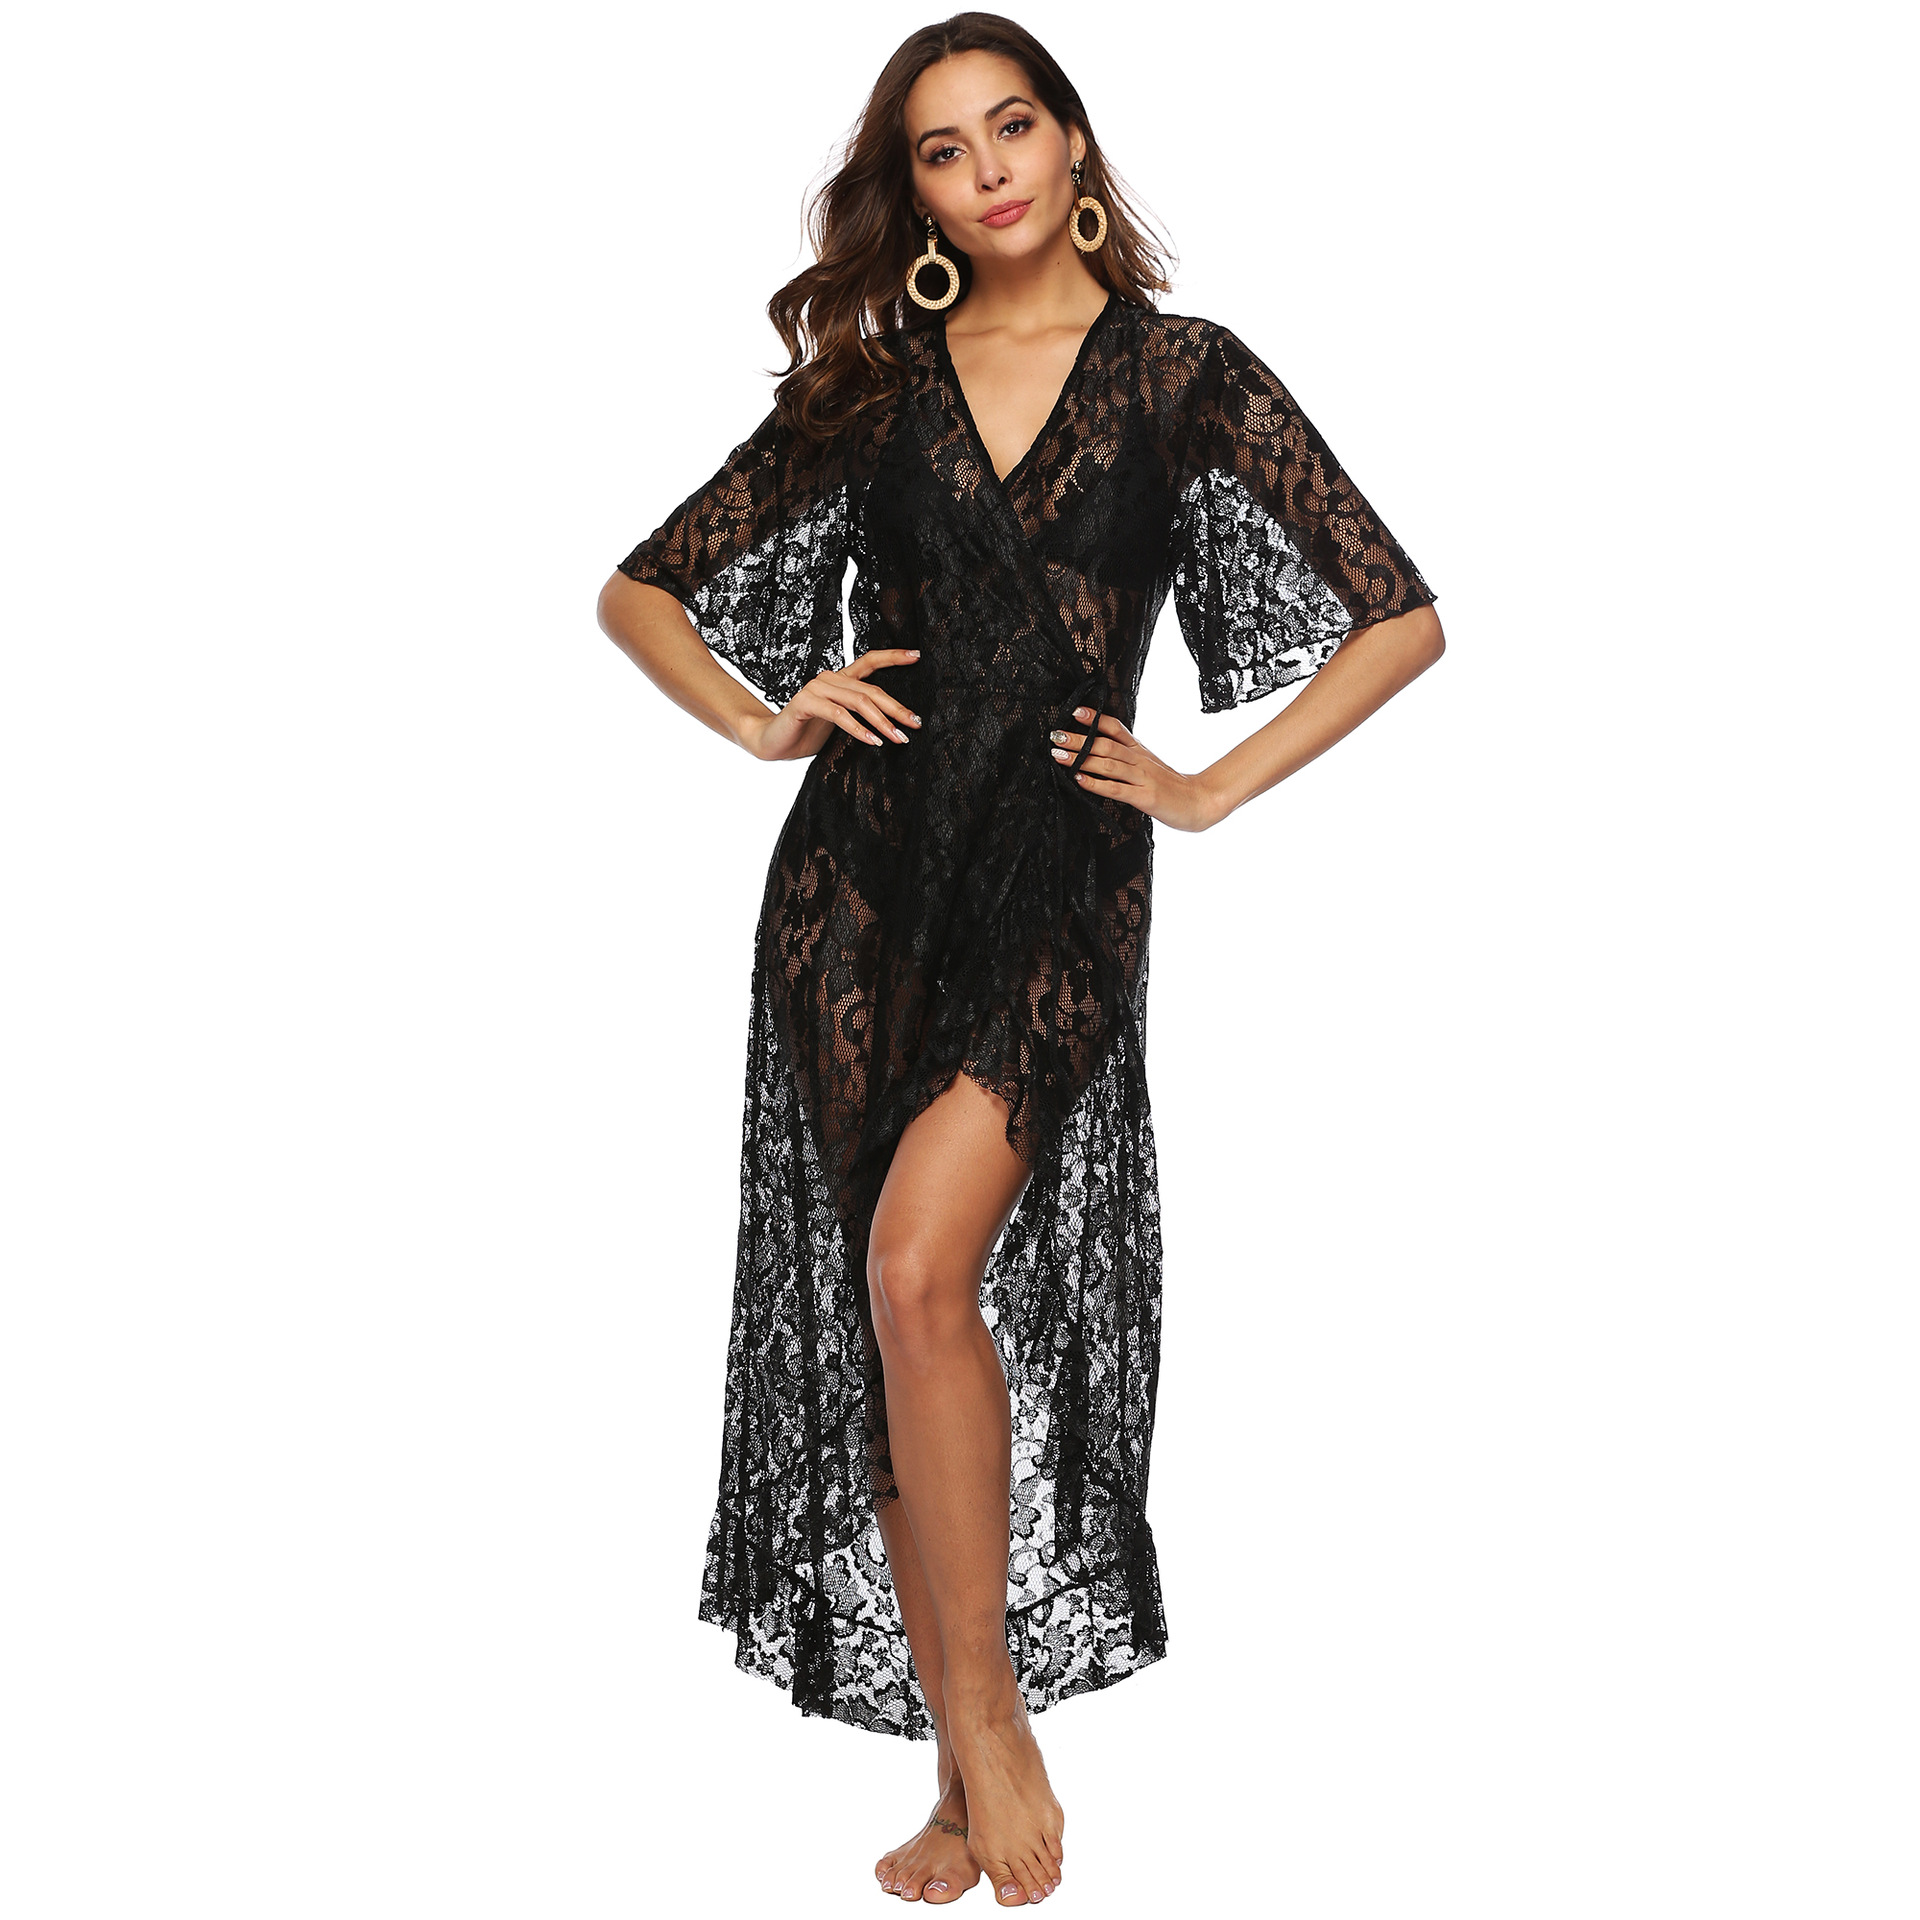 Lace beach blouse dresses irregular ruffles edges loose long dress half sleeves lace in Dresses from Women 39 s Clothing